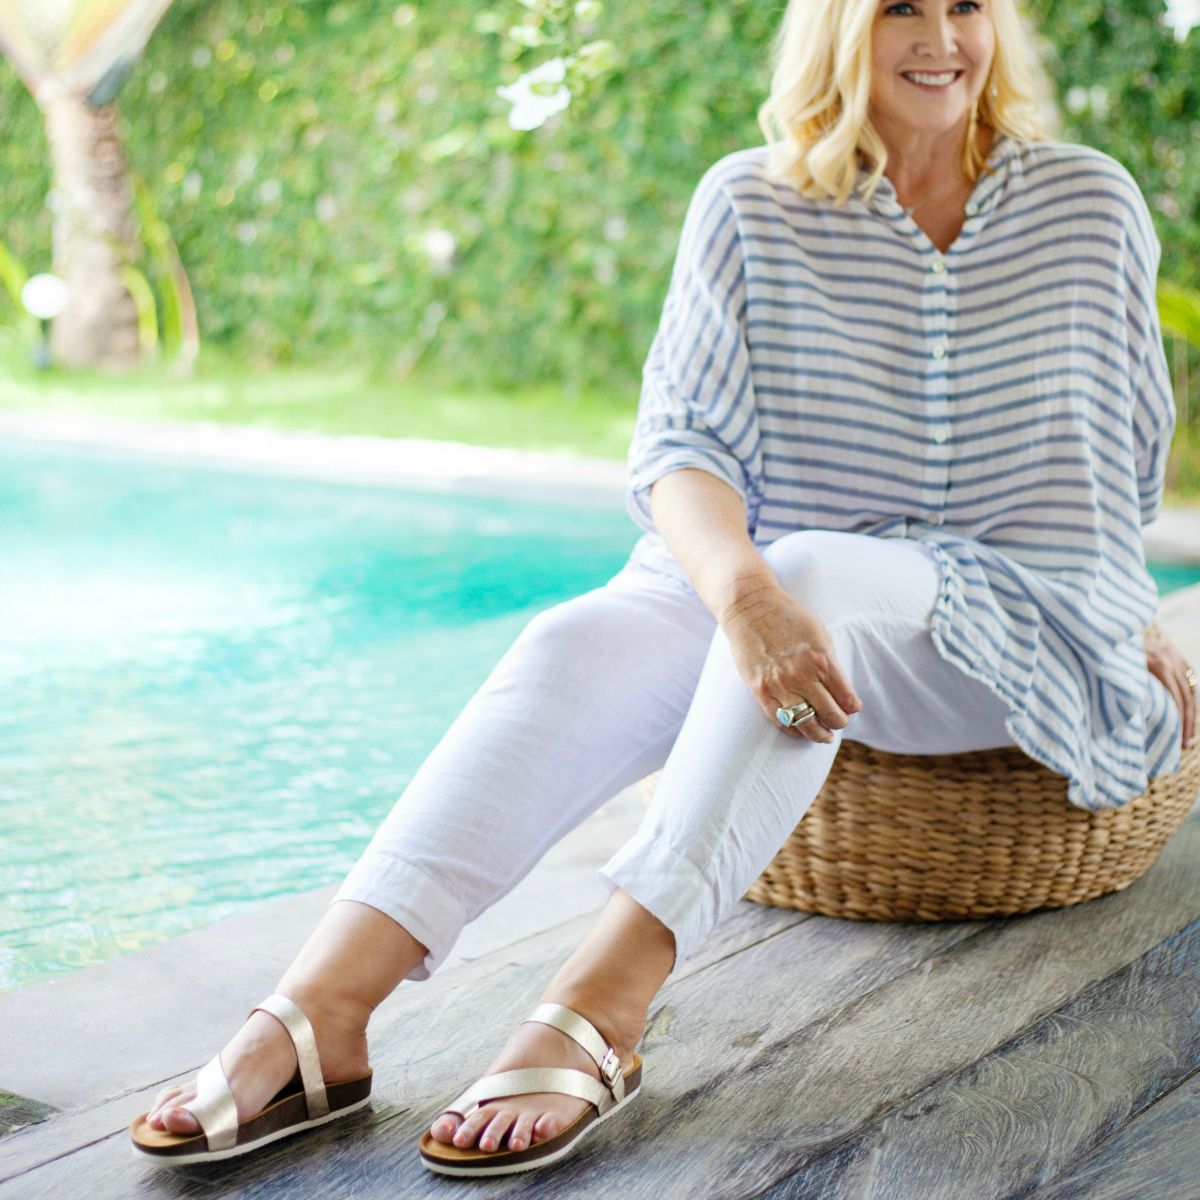 d97024bd966 Summer sandals that not only look good but are good for the health of our  feet